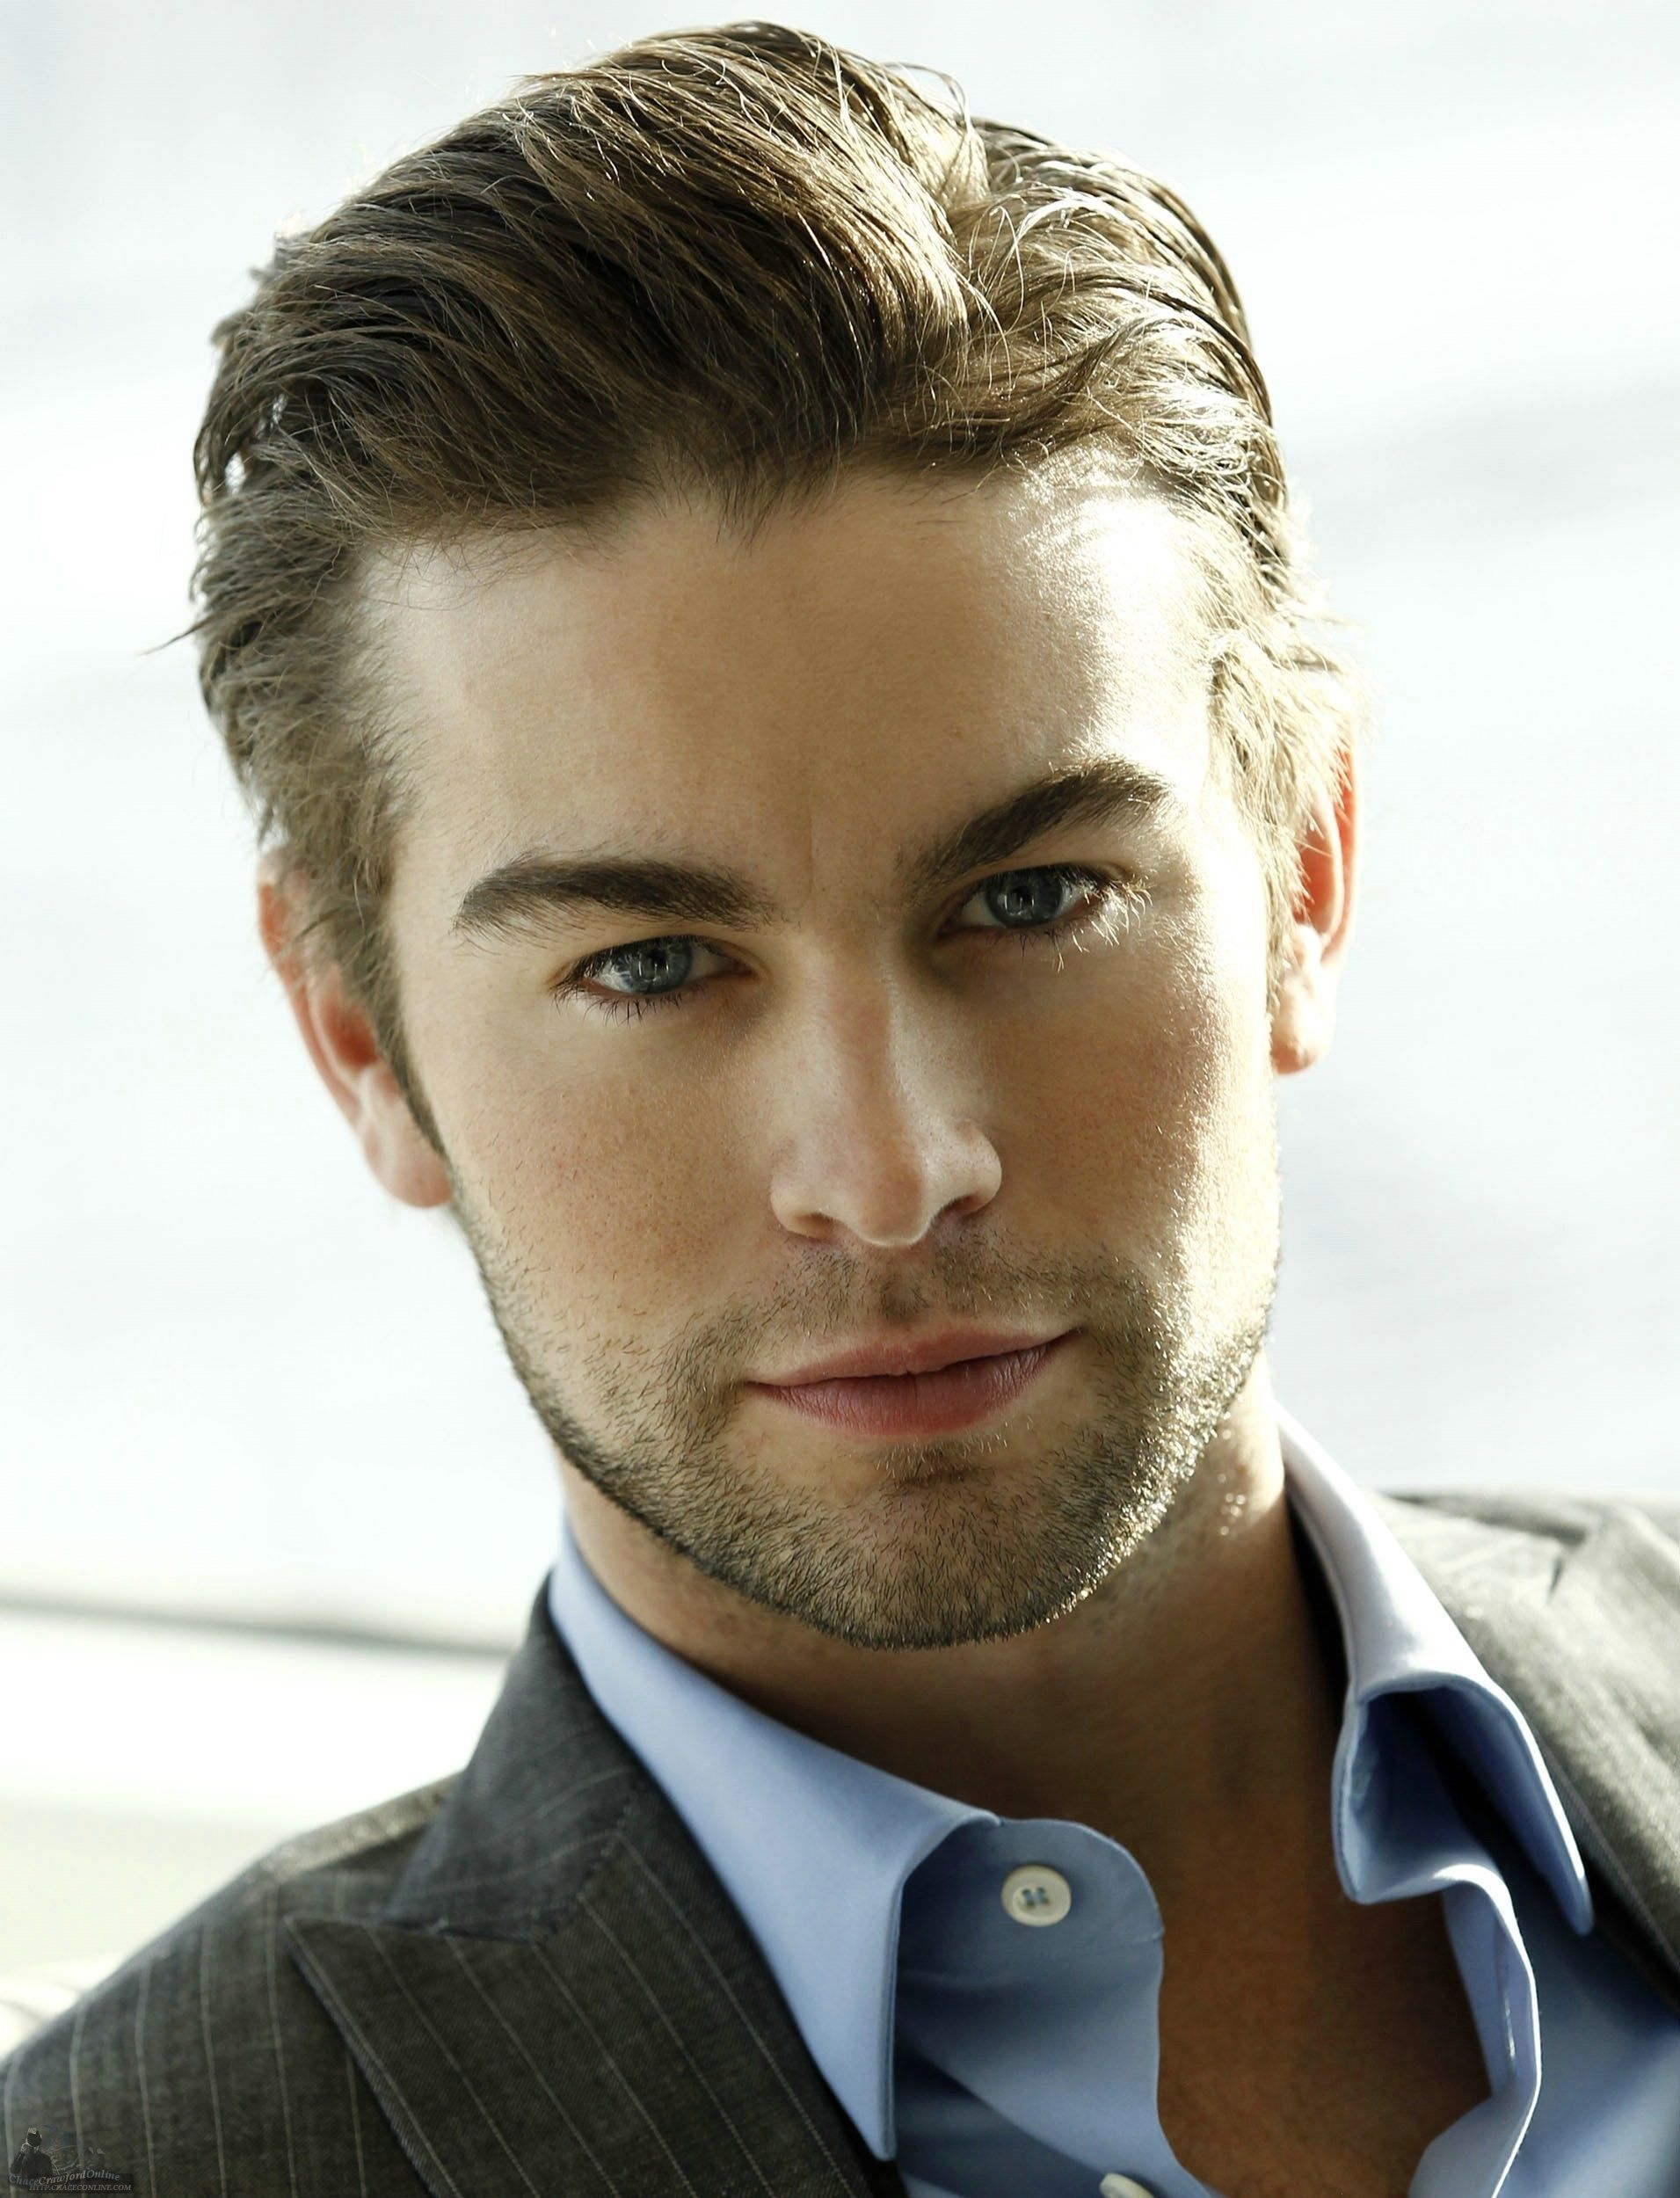 Boy hairstyle formal chace crawford  ololoshenka  pinterest  chace crawford